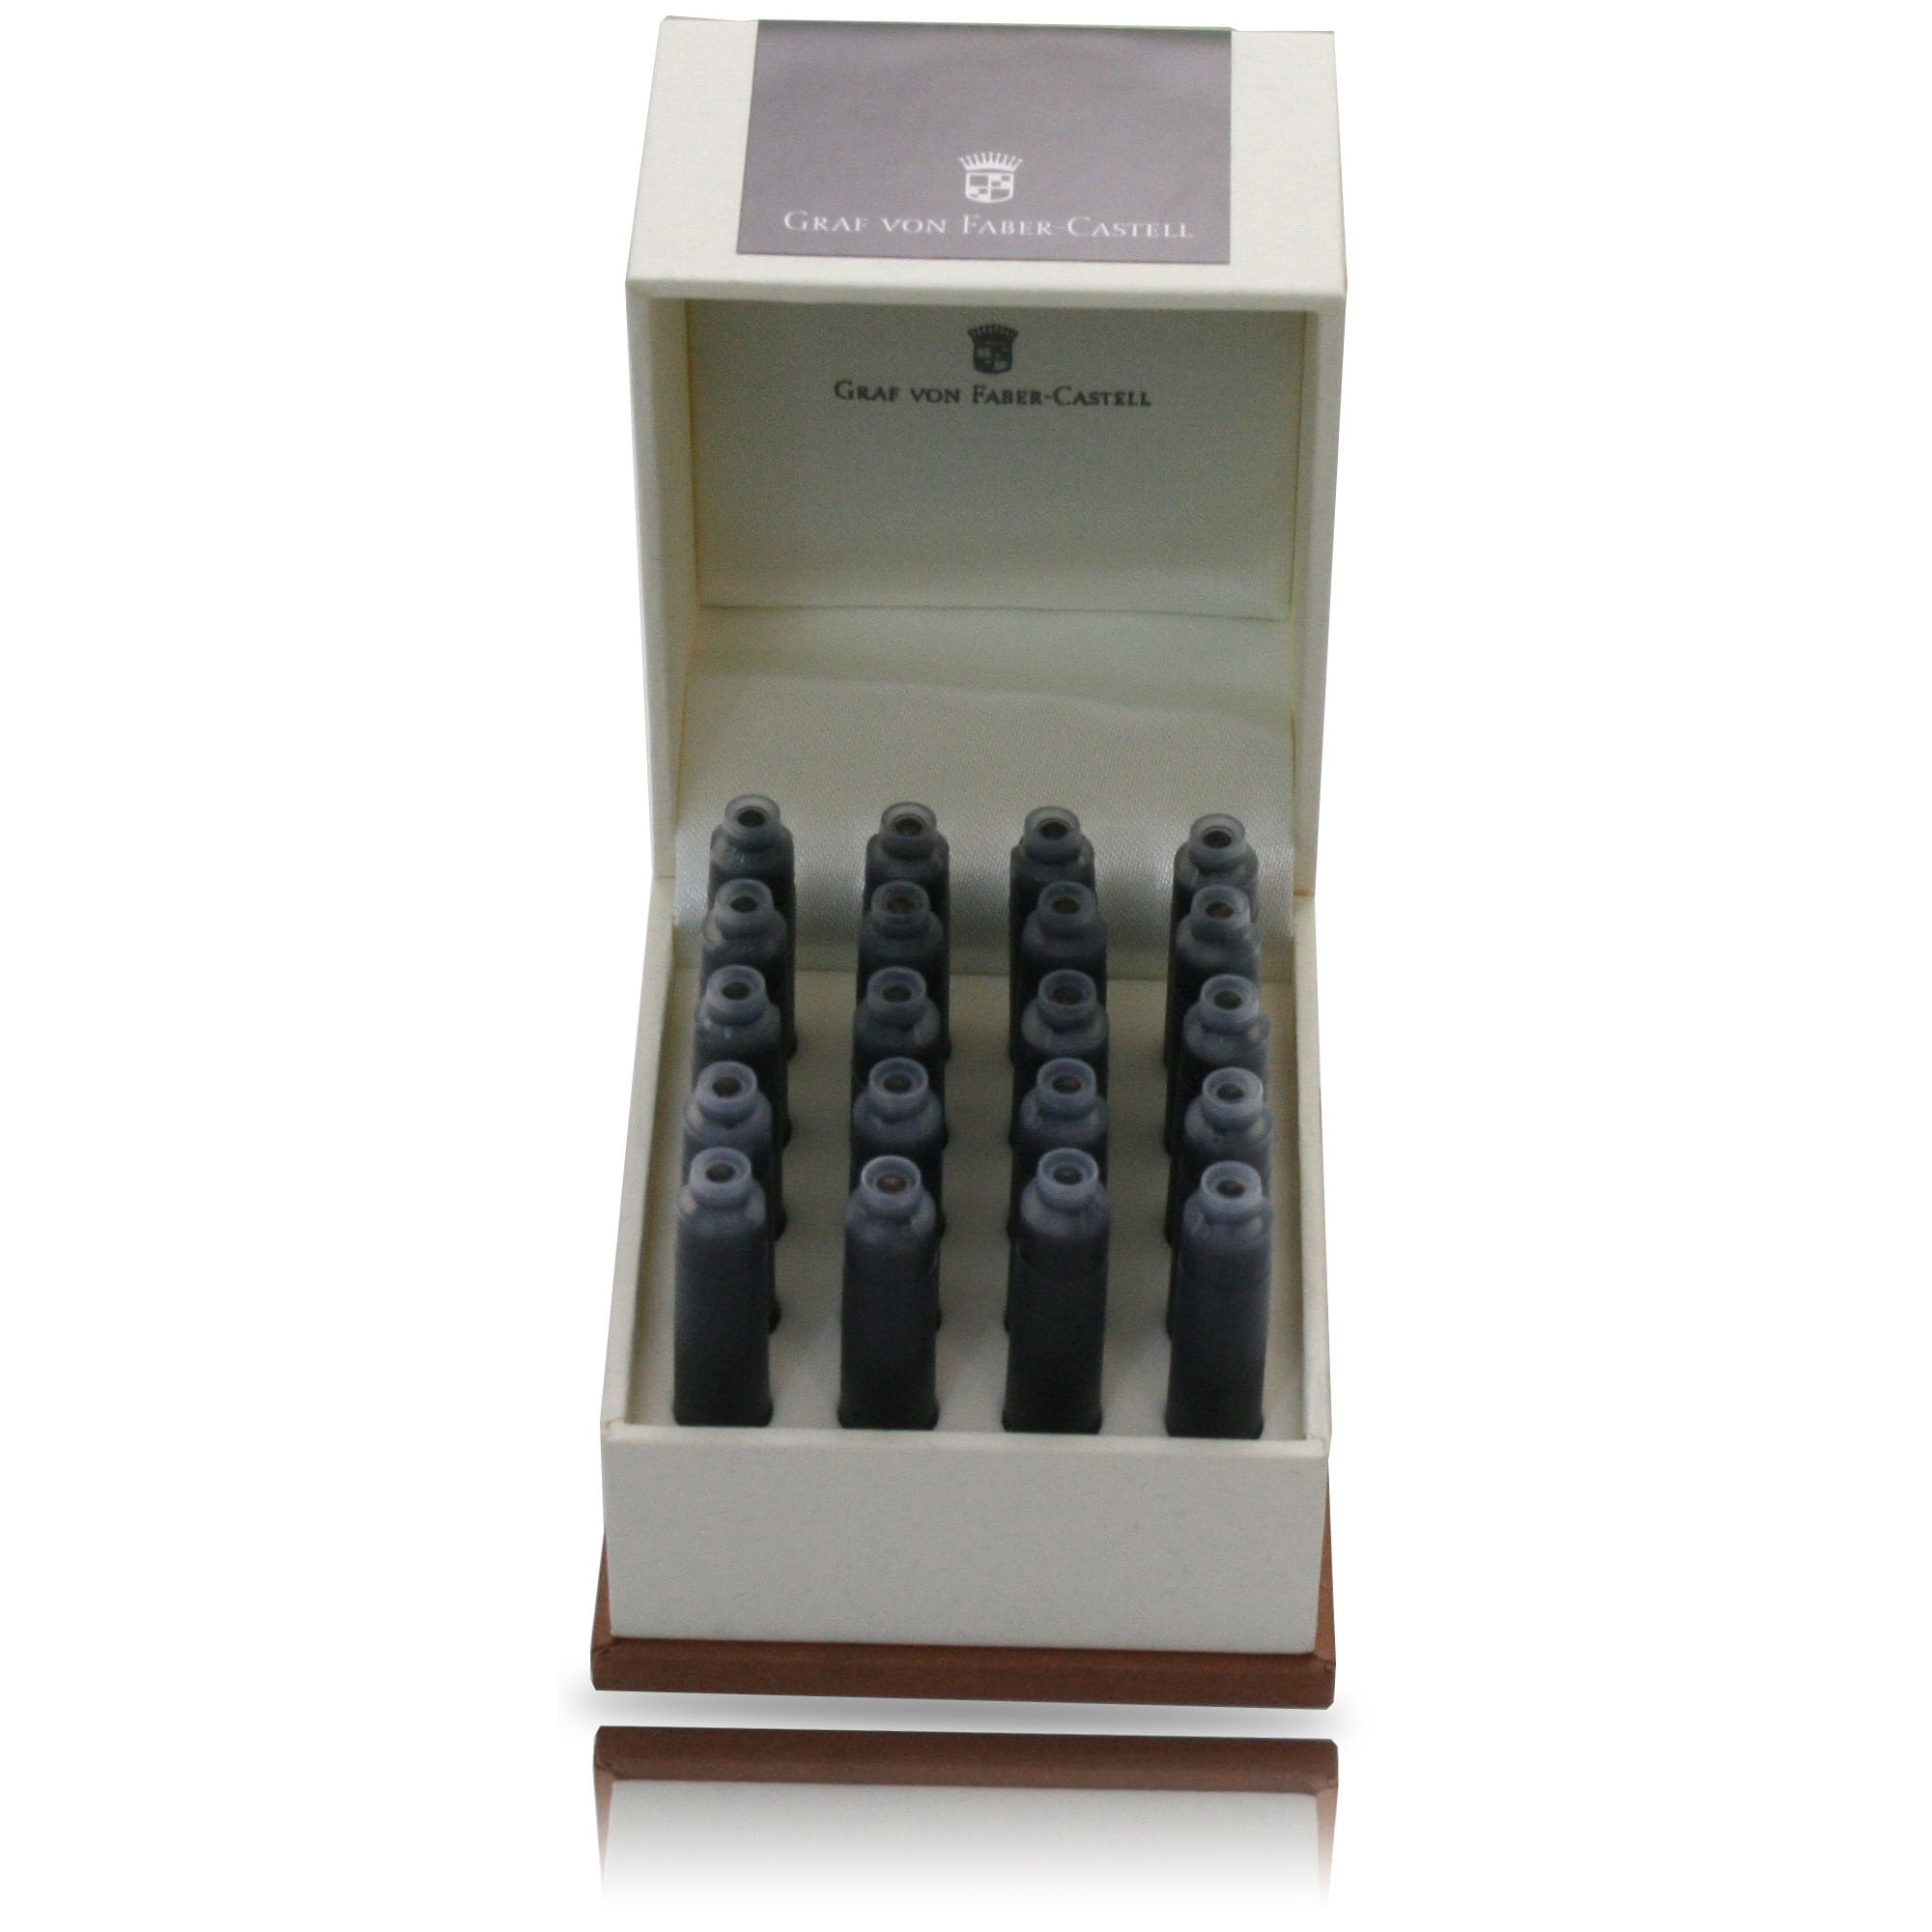 Graf Von Faber-Castell Design Carbon Black Ink Cartridges 20/box-Pen Boutique Ltd